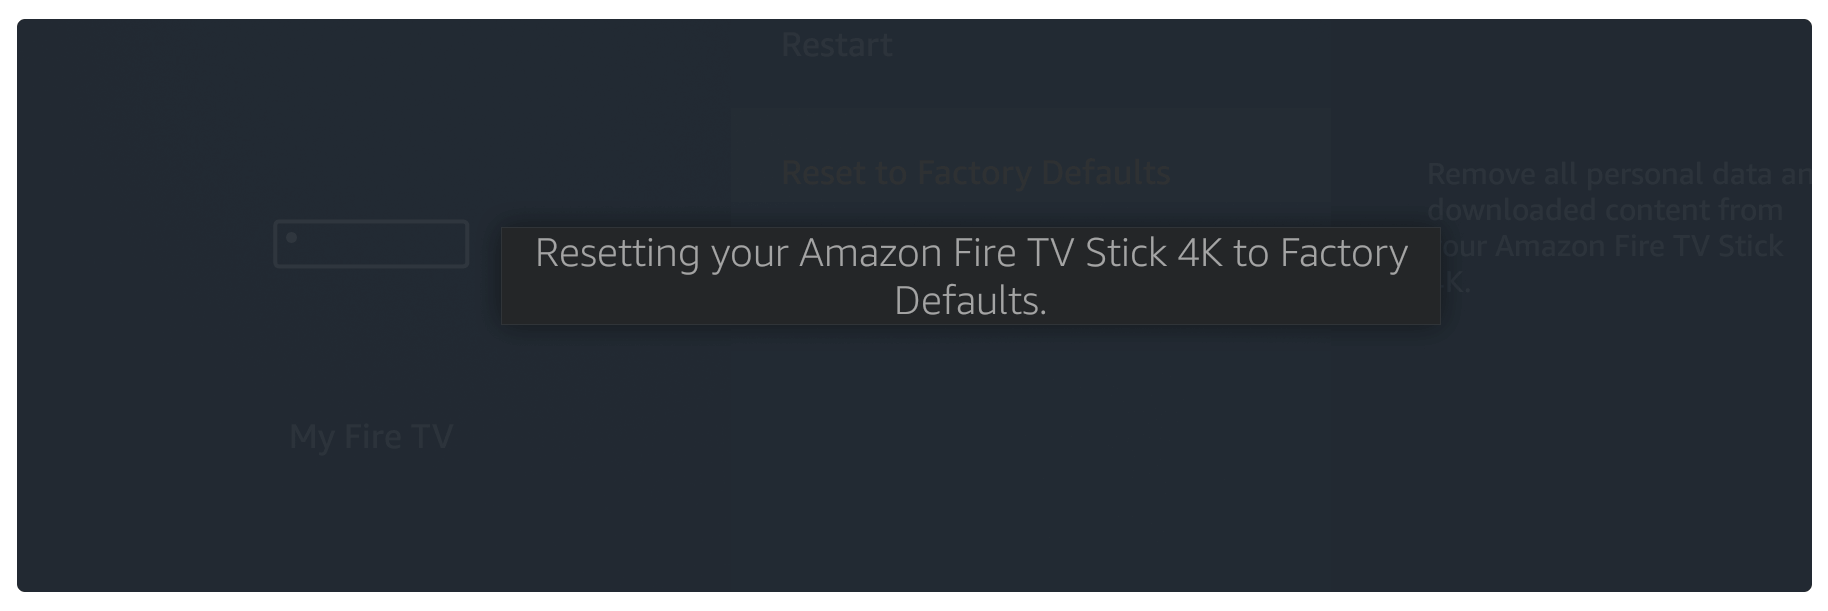 How-to-Reset-Fire-stick-to-Factory-Settings